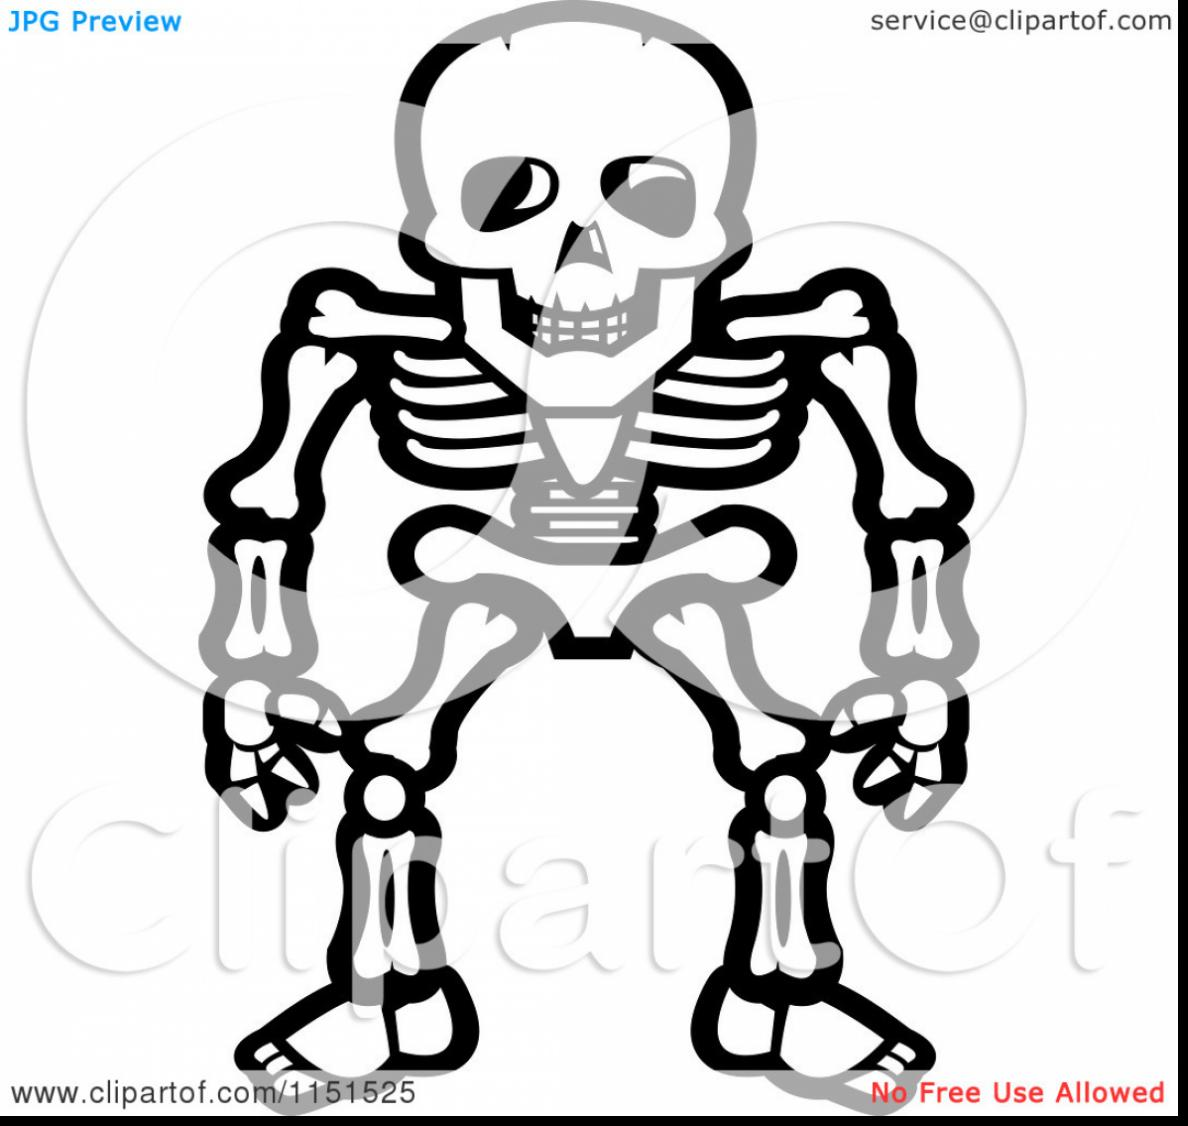 1188x1126 Spectacular Minecraft Skeleton Coloring Pages With Skeleton